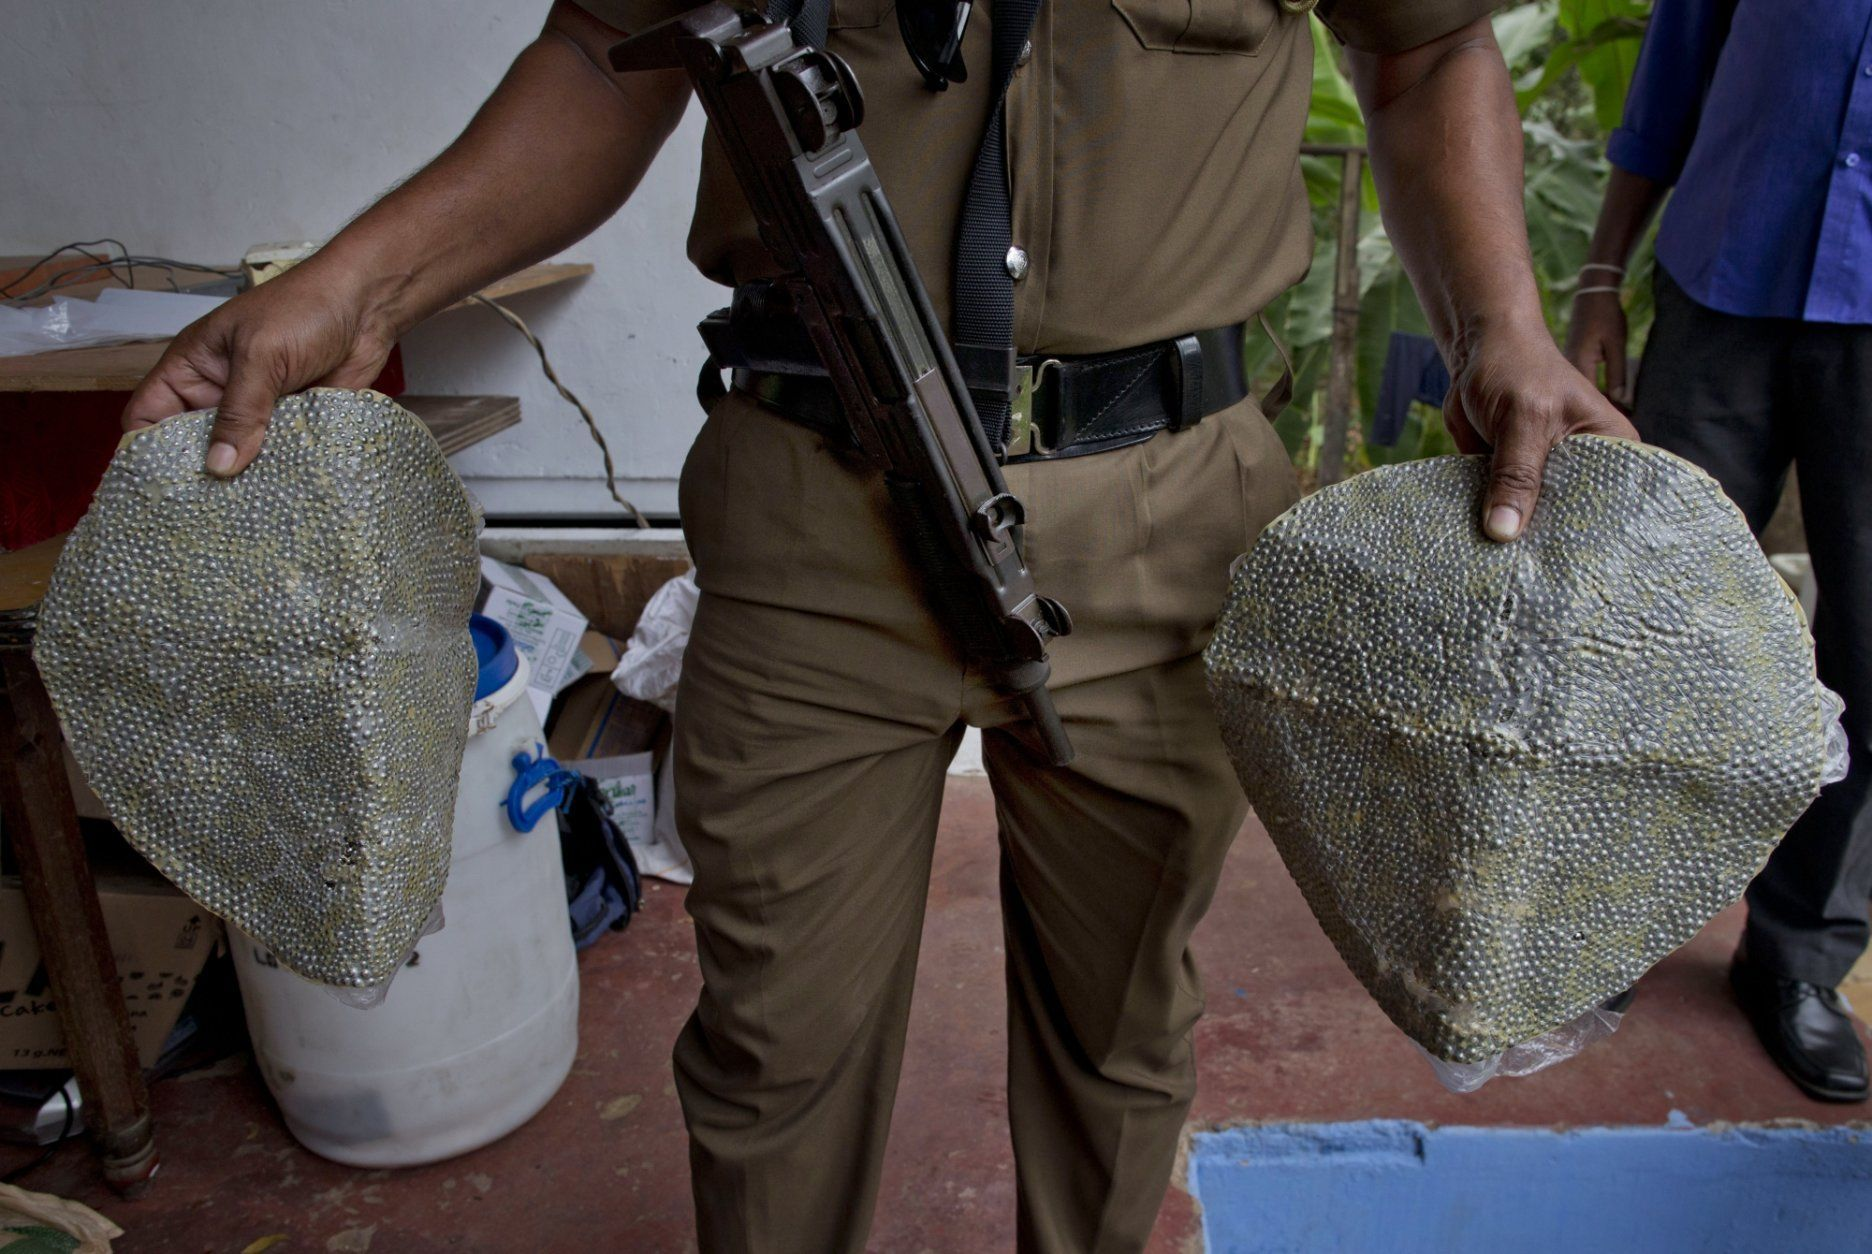 A police officer displays ball-bearings that increase the lethality of explosions in Ampara, Sri Lanka, Sunday, April 28, 2019. Police in Ampara showed The Associated Press on Sunday the explosives, chemicals and Islamic State flag they recovered from the site of one security force raid in the region as Sri Lanka's Catholics celebrated at televised Mass in the safety of their homes. (AP Photo/Gemunu Amarasinghe)